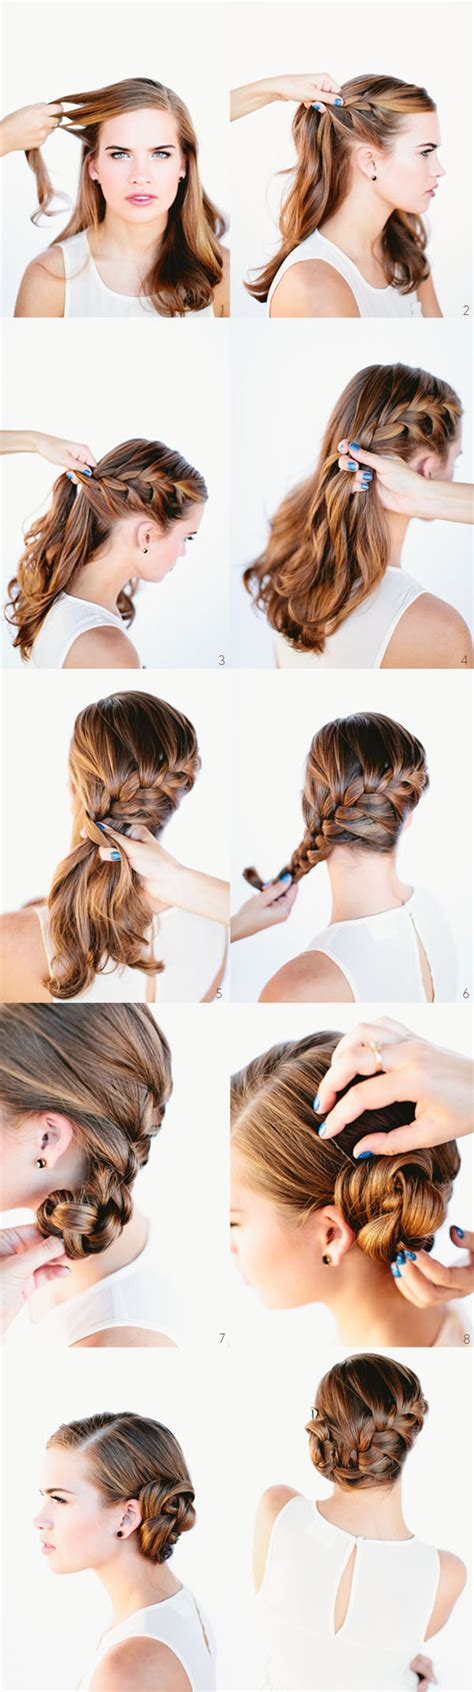 diy hairstyles side bun 10 ways to make lovely diy side hairstyles pretty designs